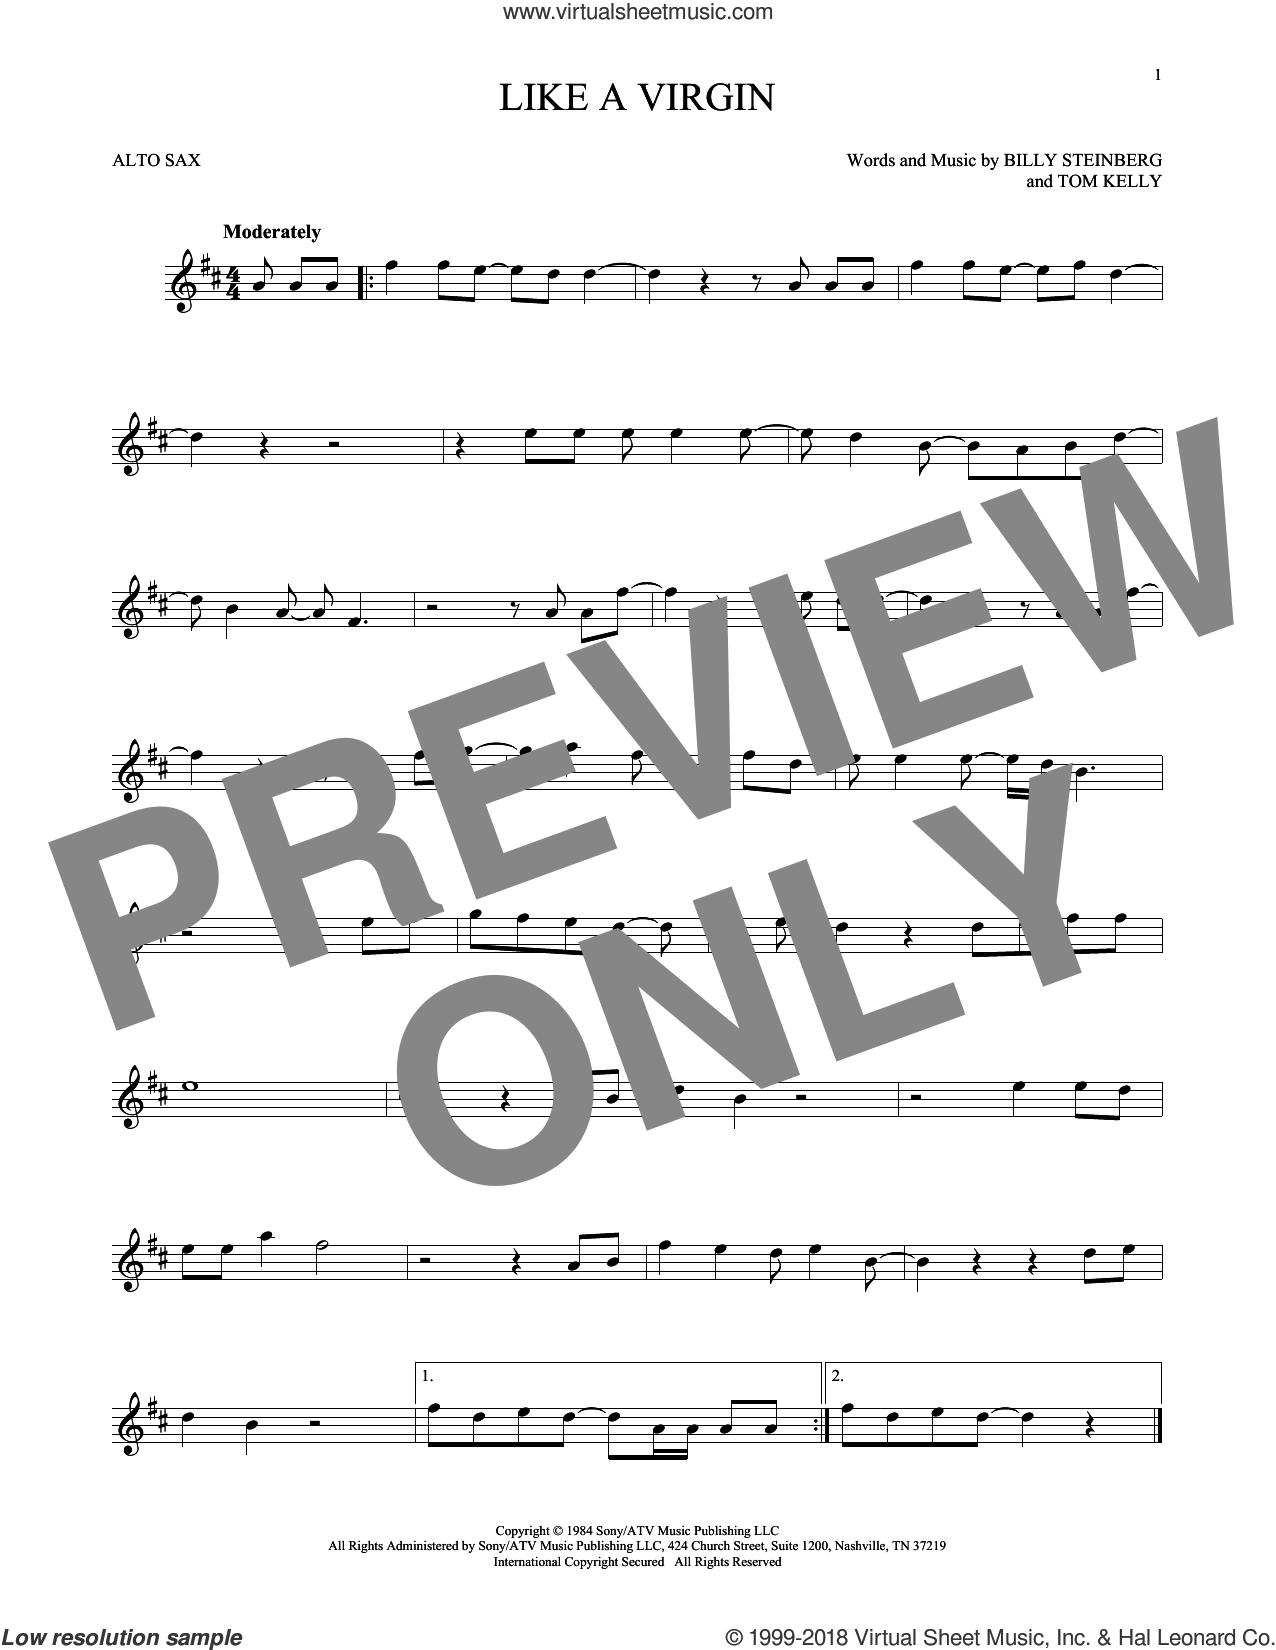 Like A Virgin sheet music for alto saxophone solo by Madonna, Billy Steinberg and Tom Kelly, intermediate skill level